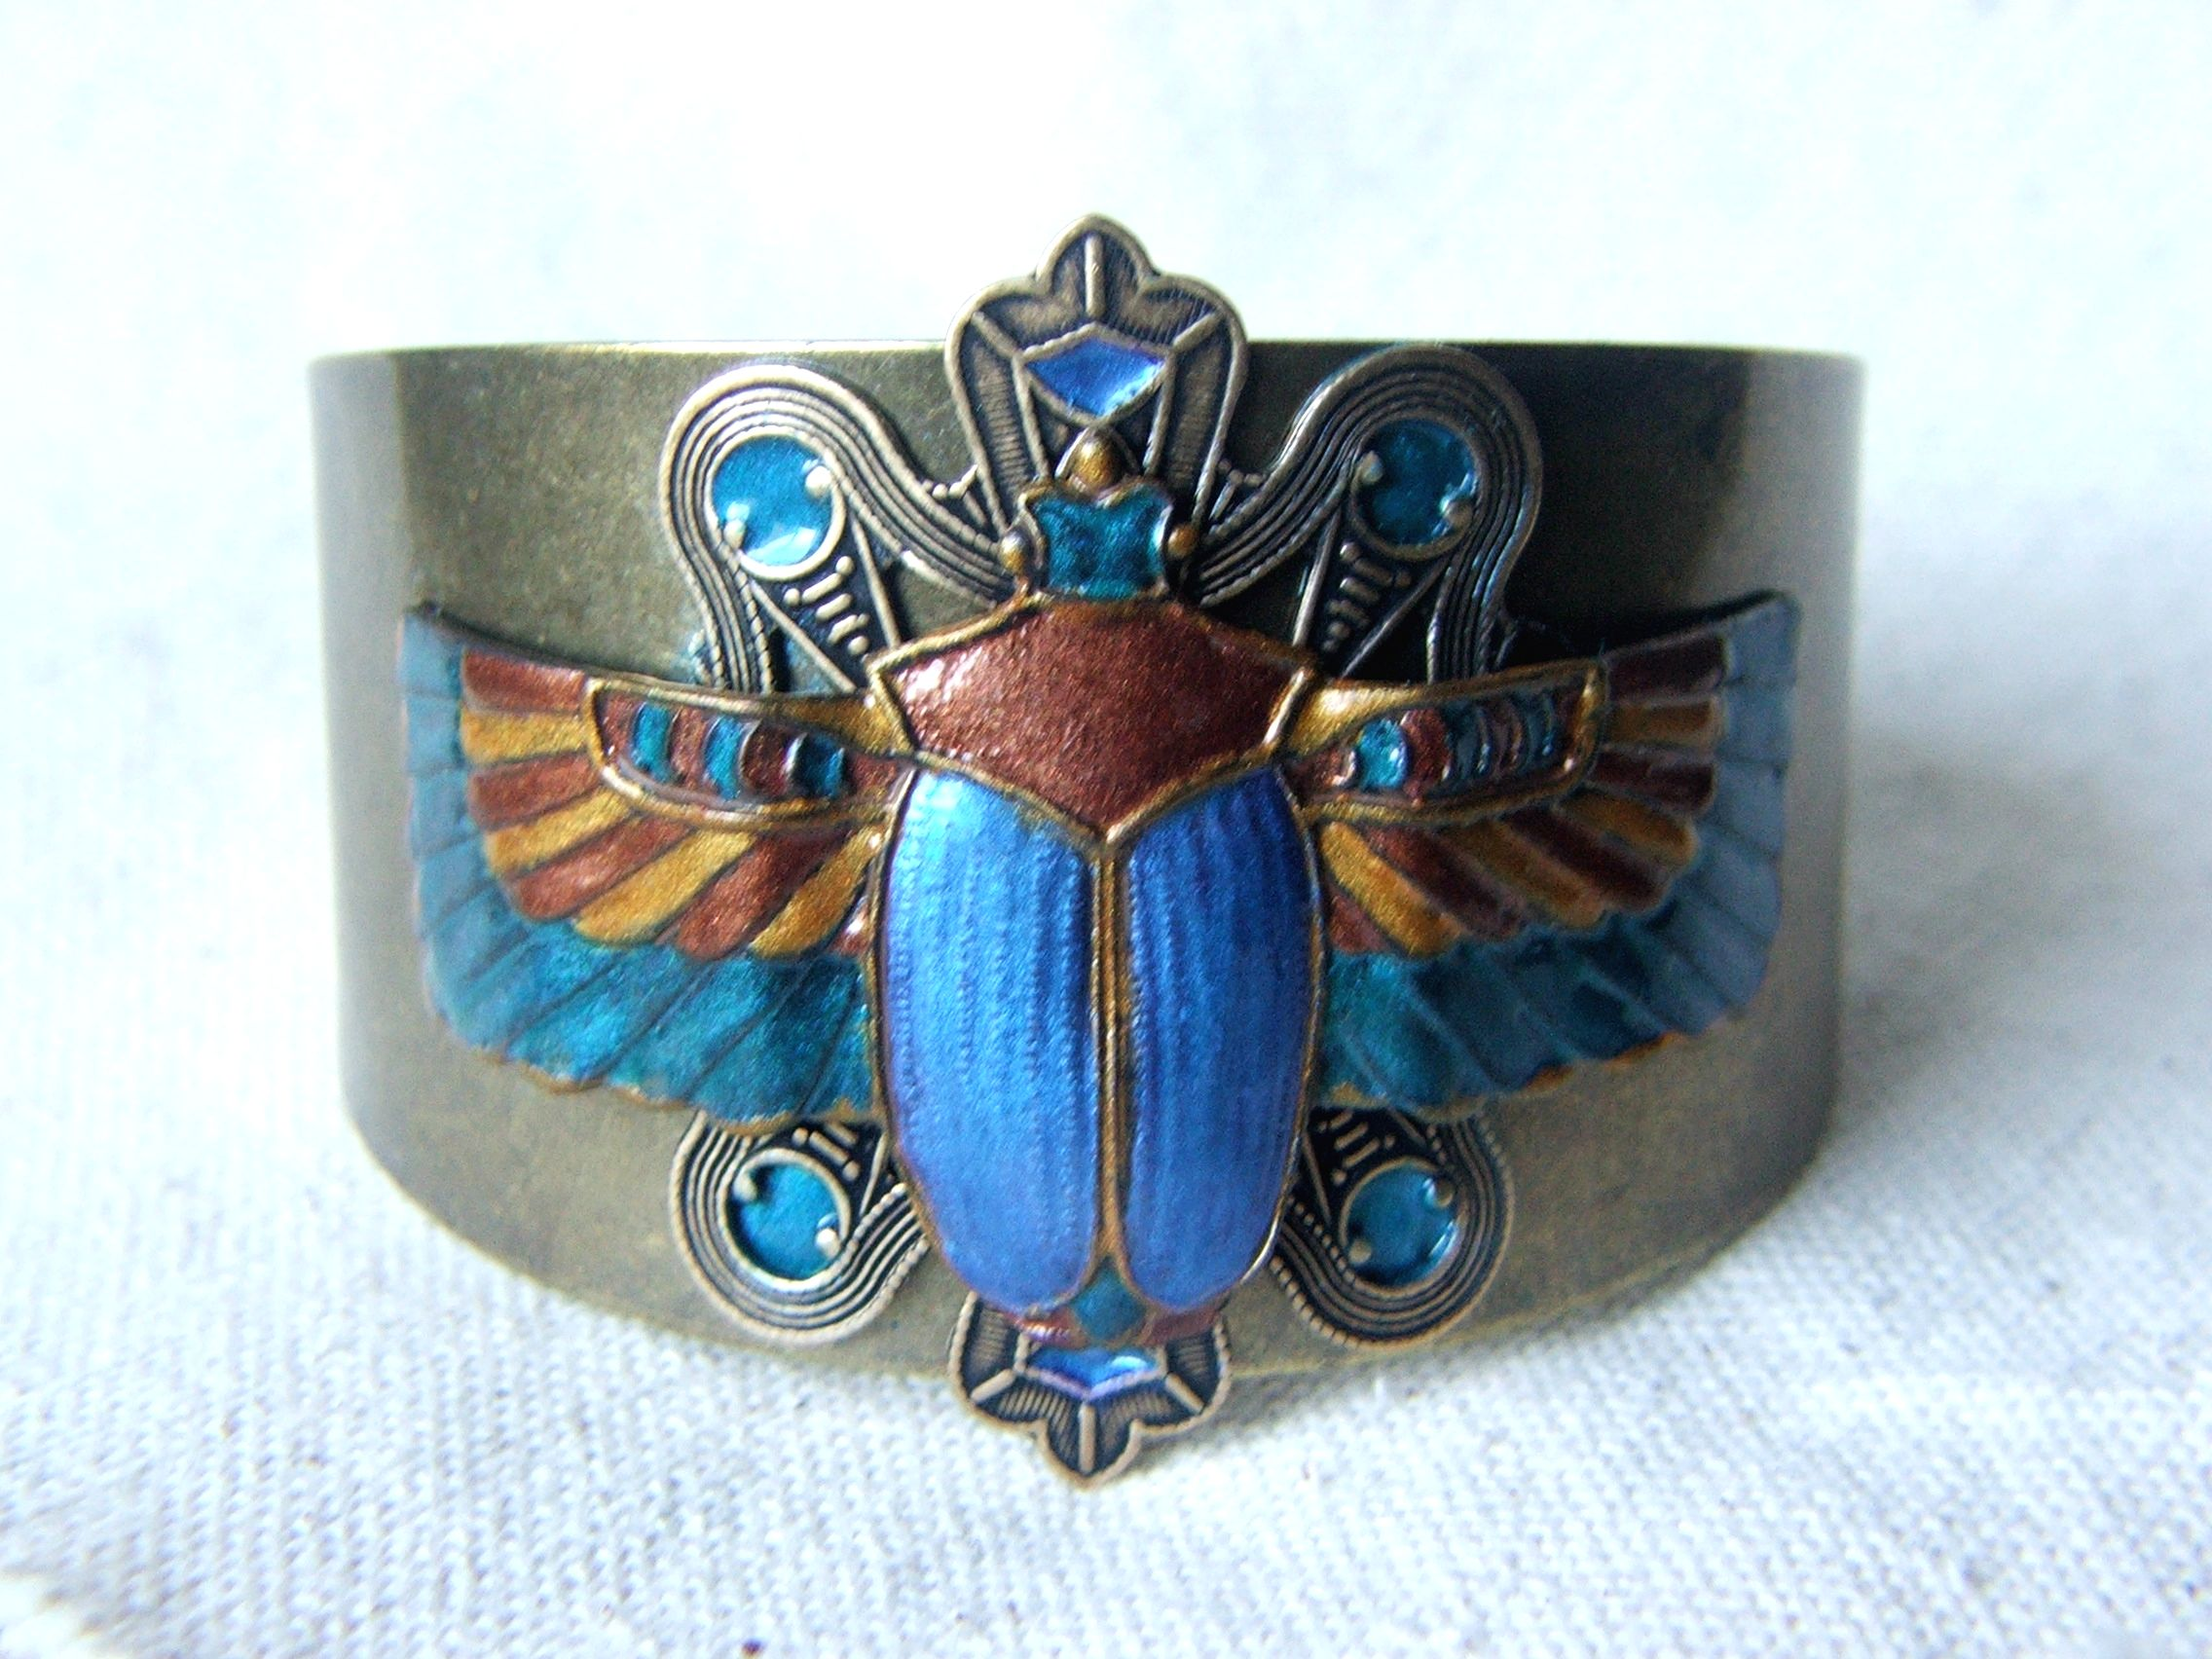 Necklace and bracelet with beetle